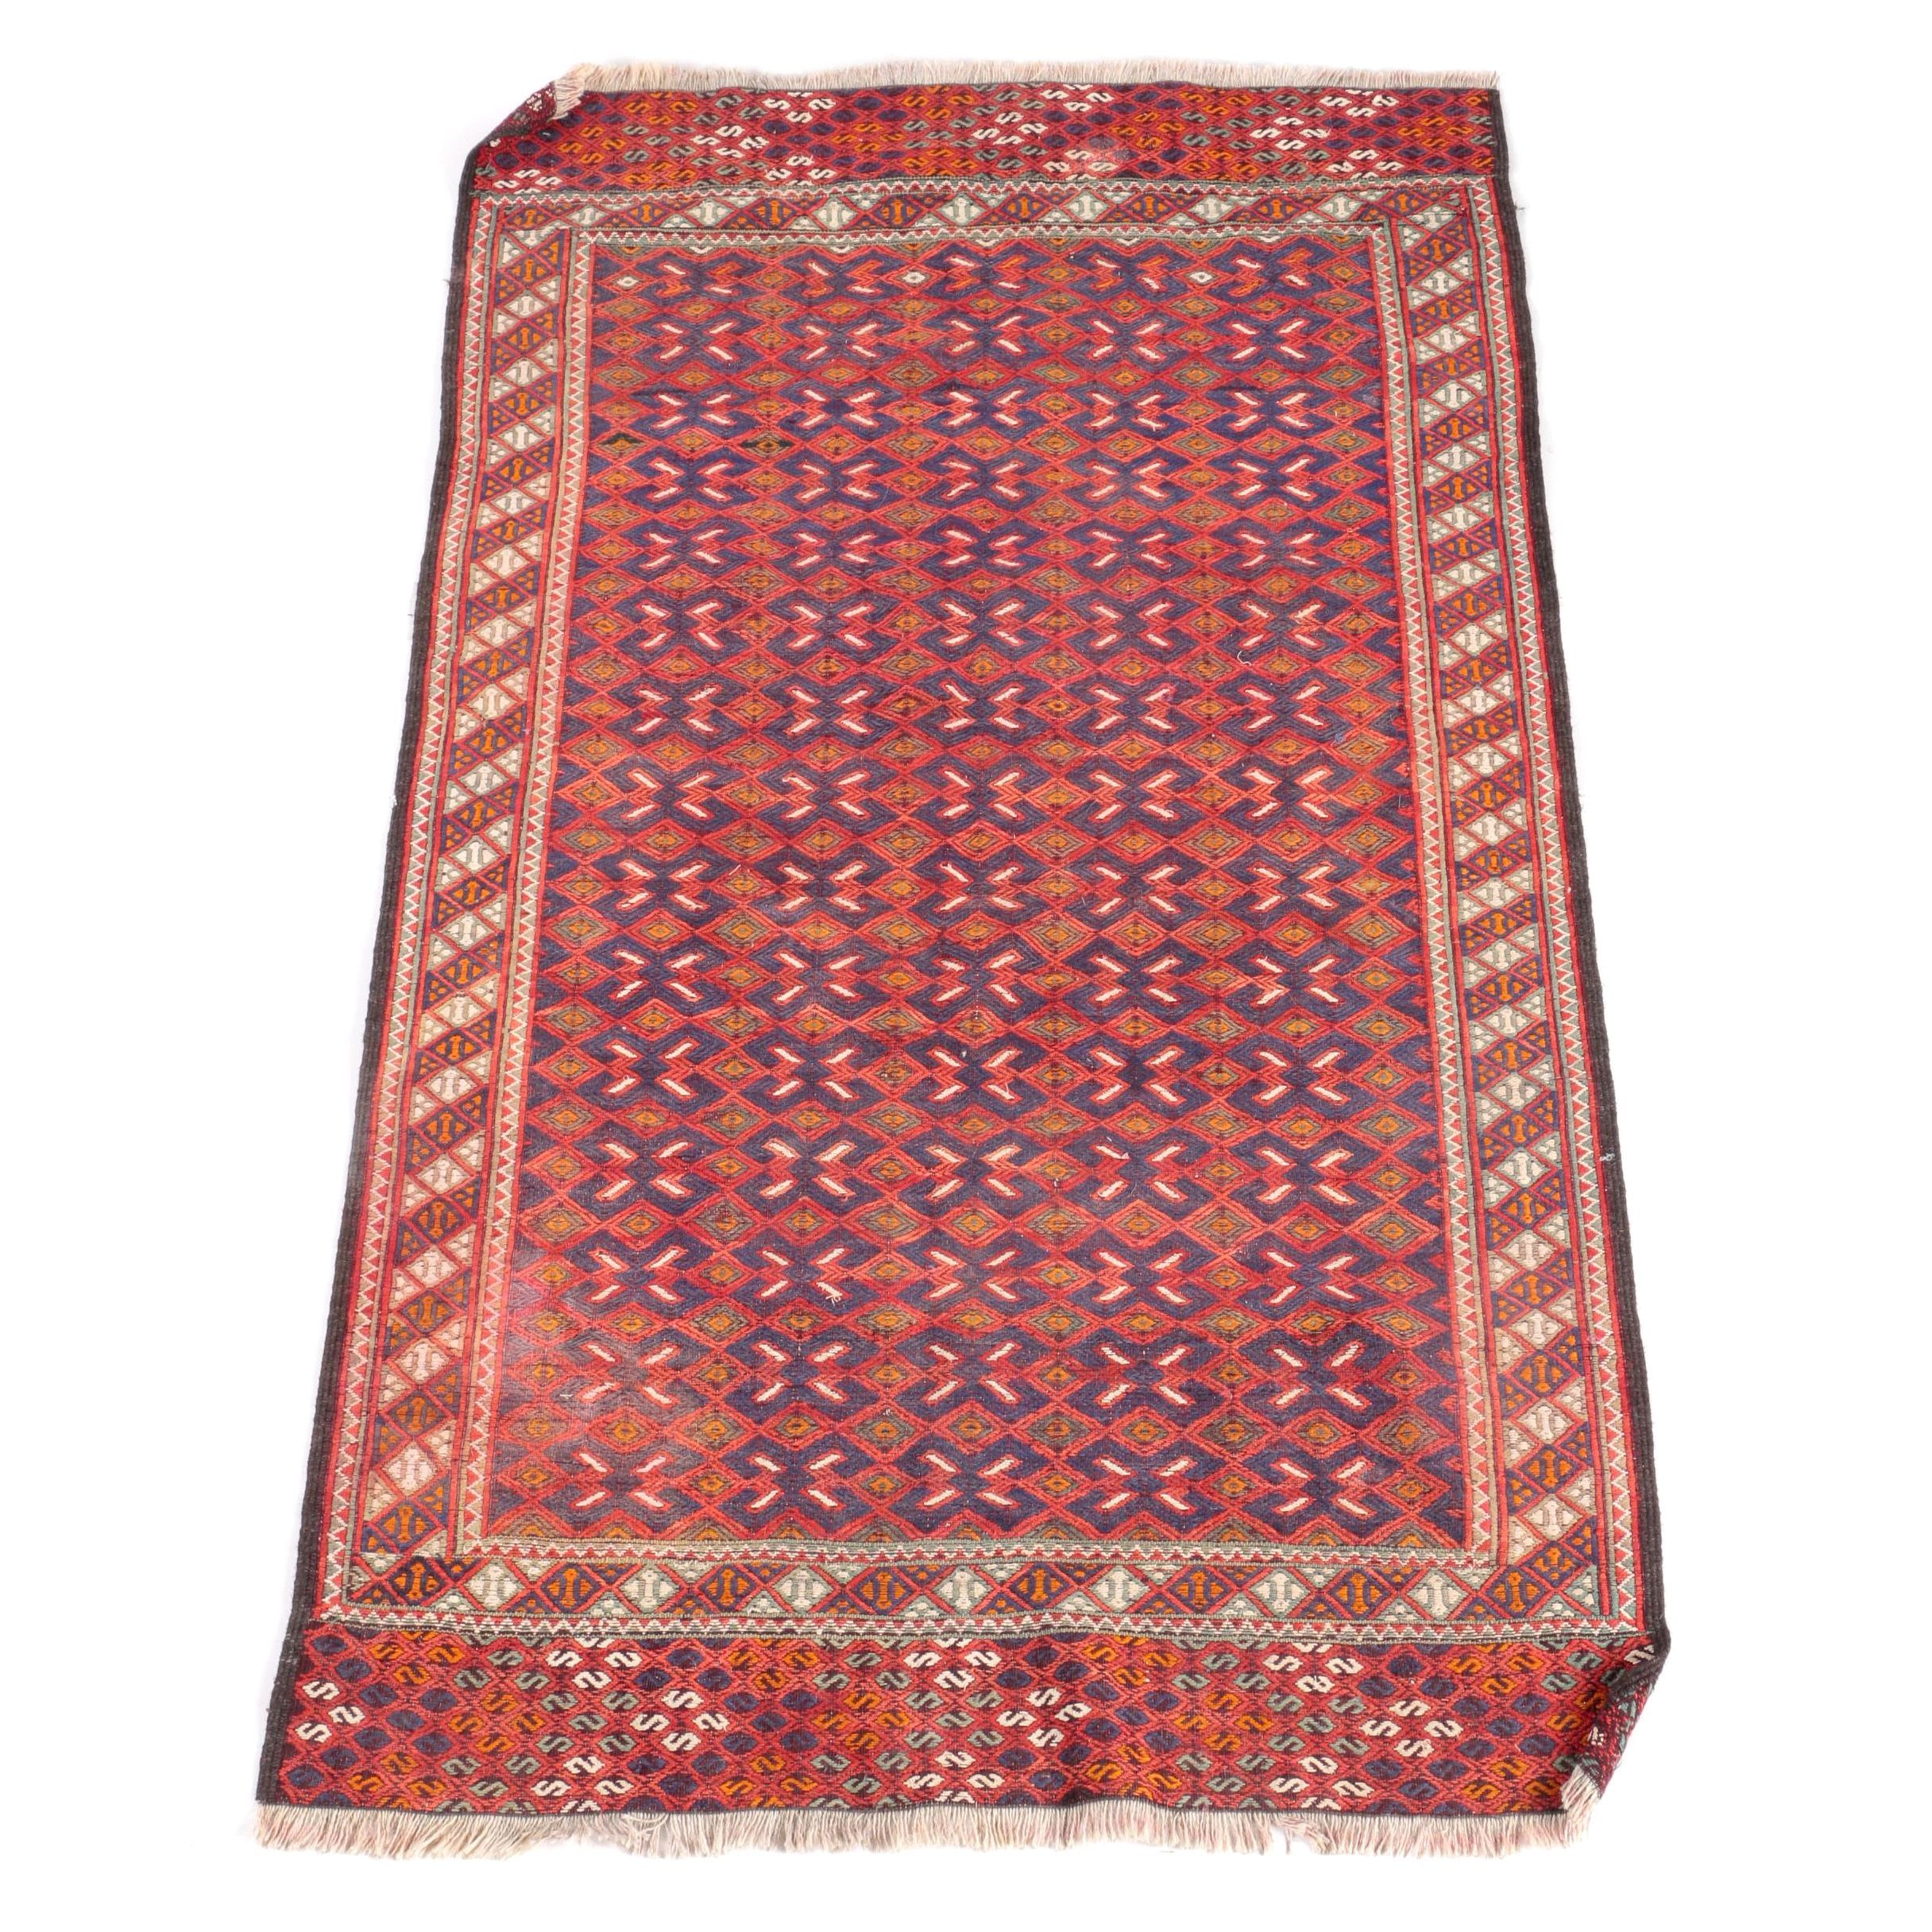 Handwoven and Embroidered Persian Baluch Area Rug